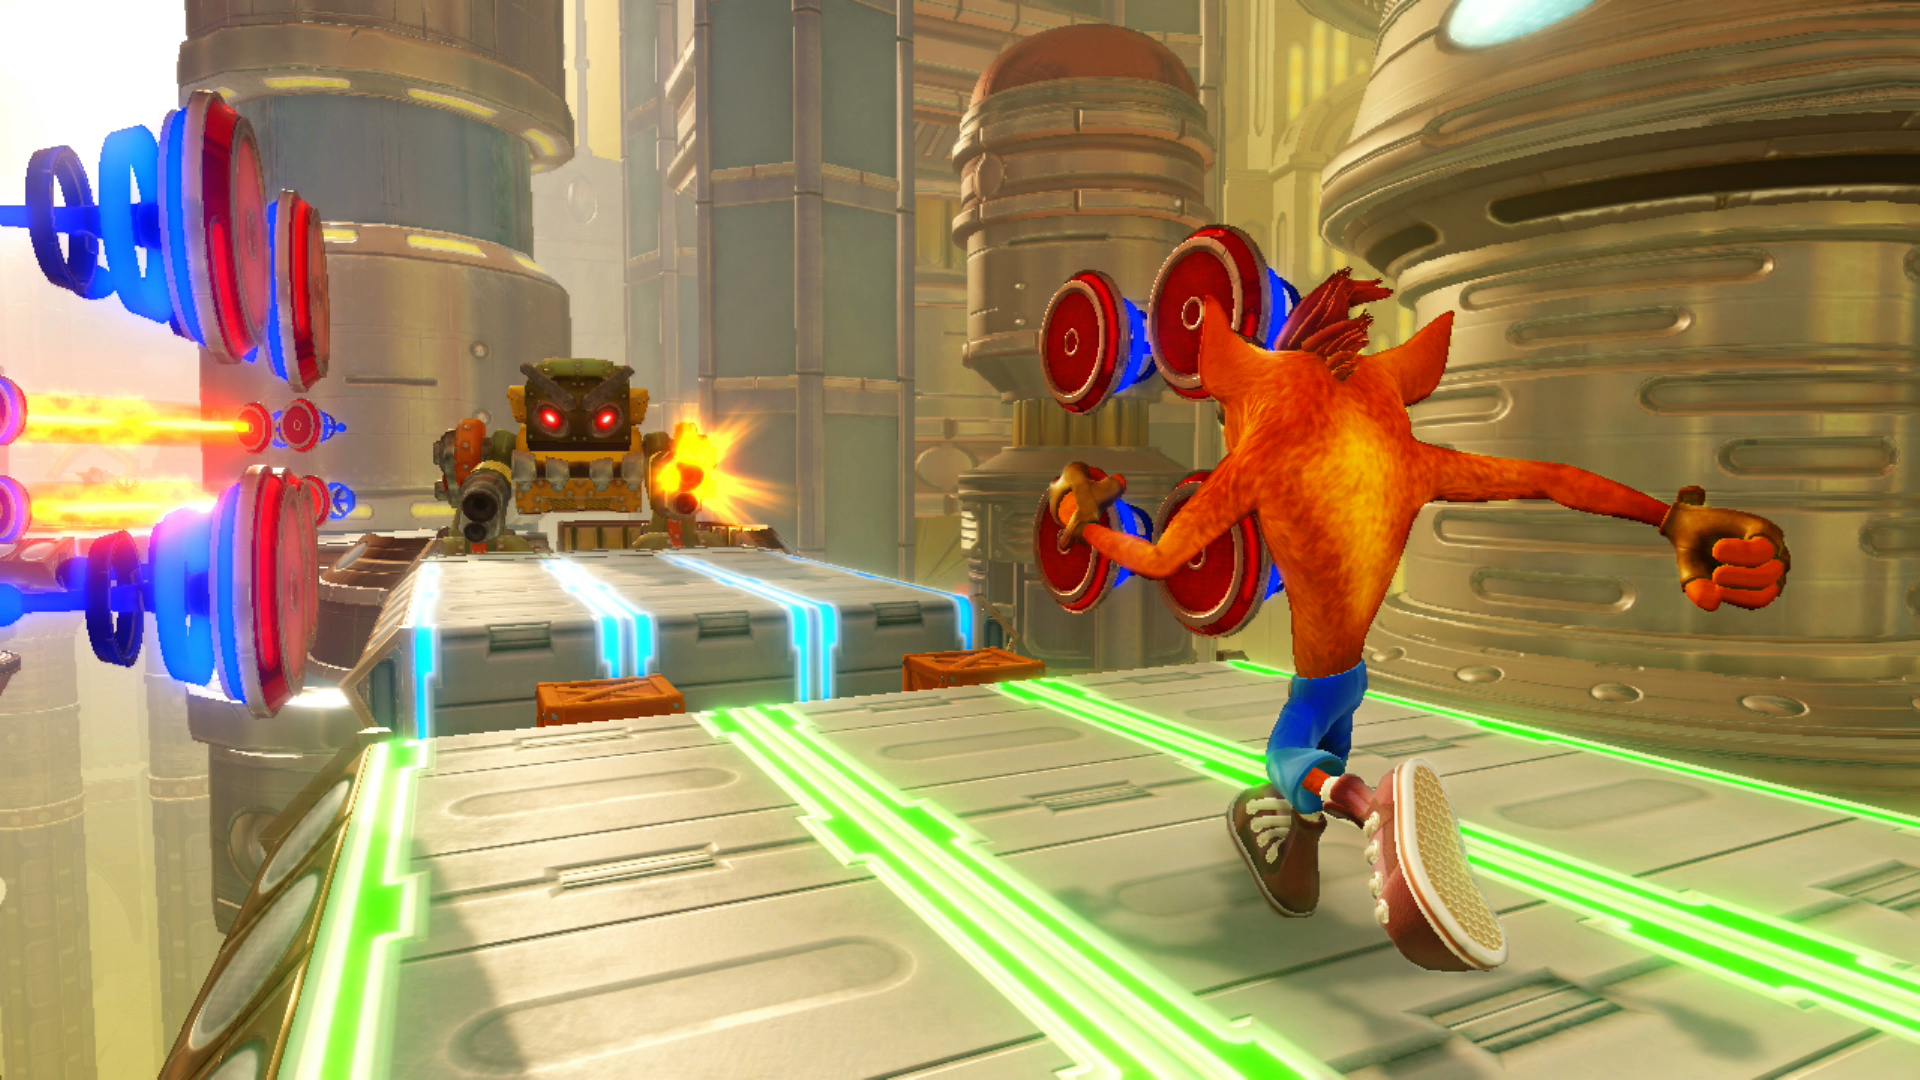 Review: Crash Bandicoot N. Sane Trilogy on the Nintendo Switch